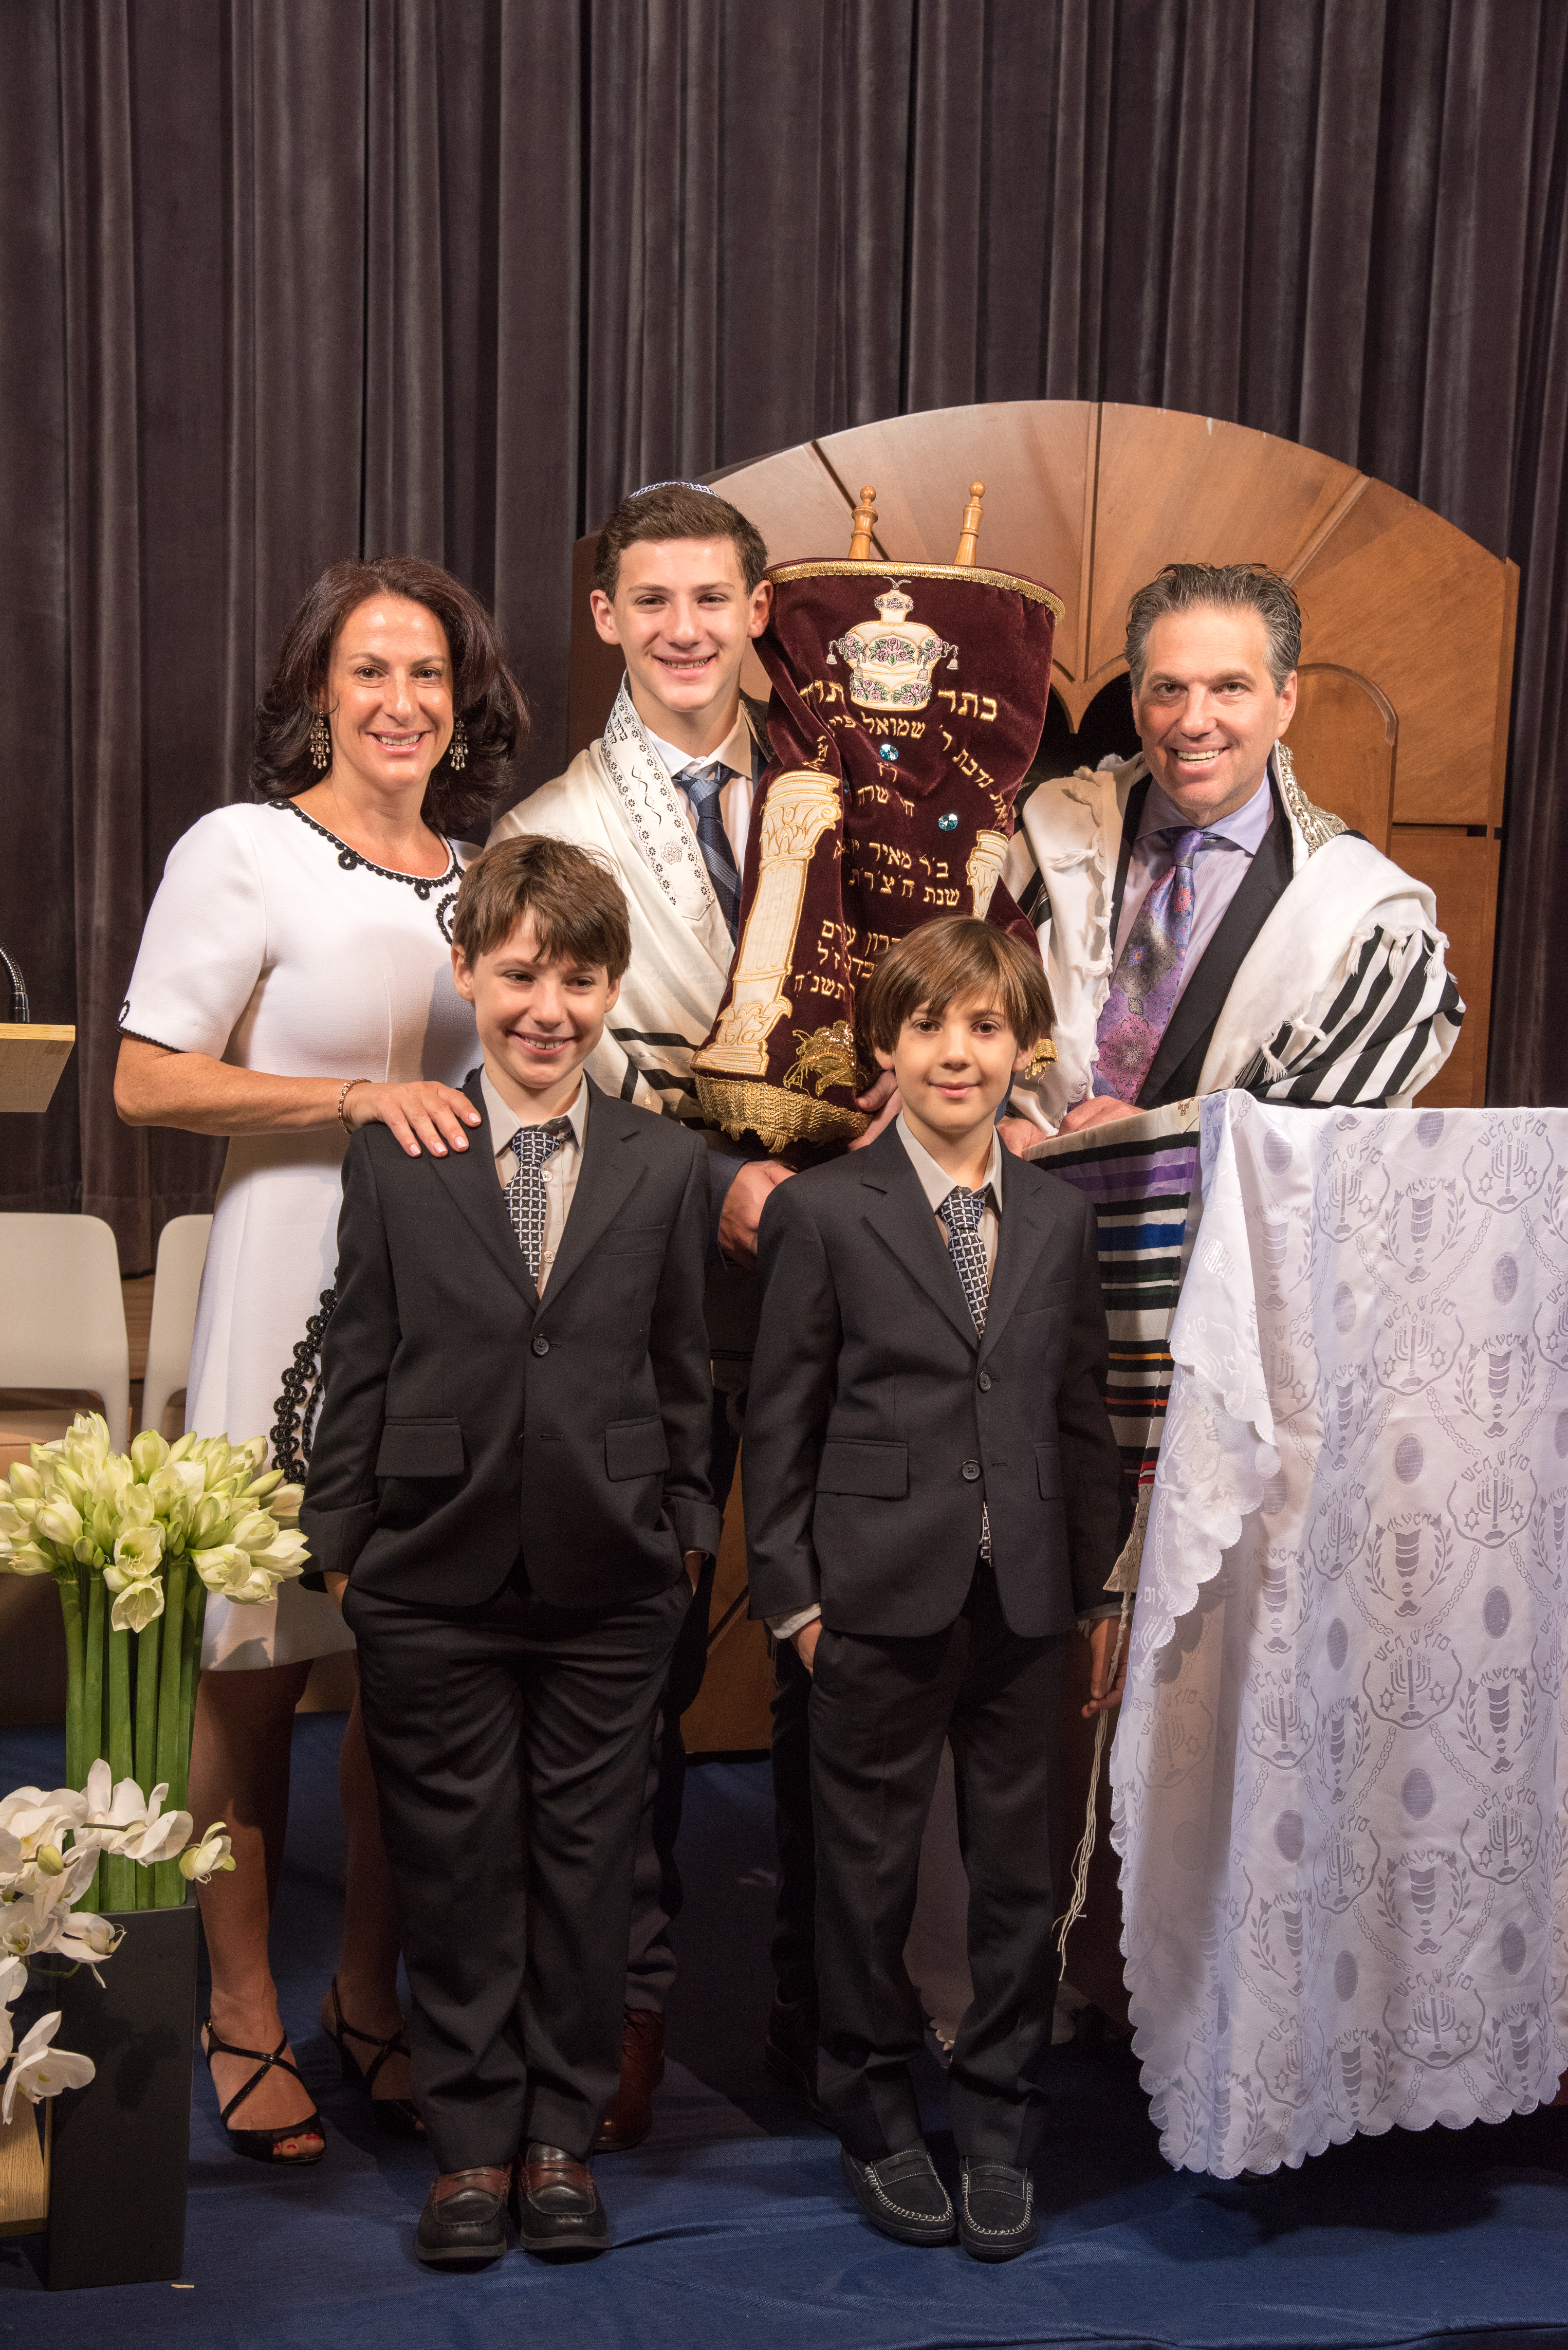 Family on the Bimah